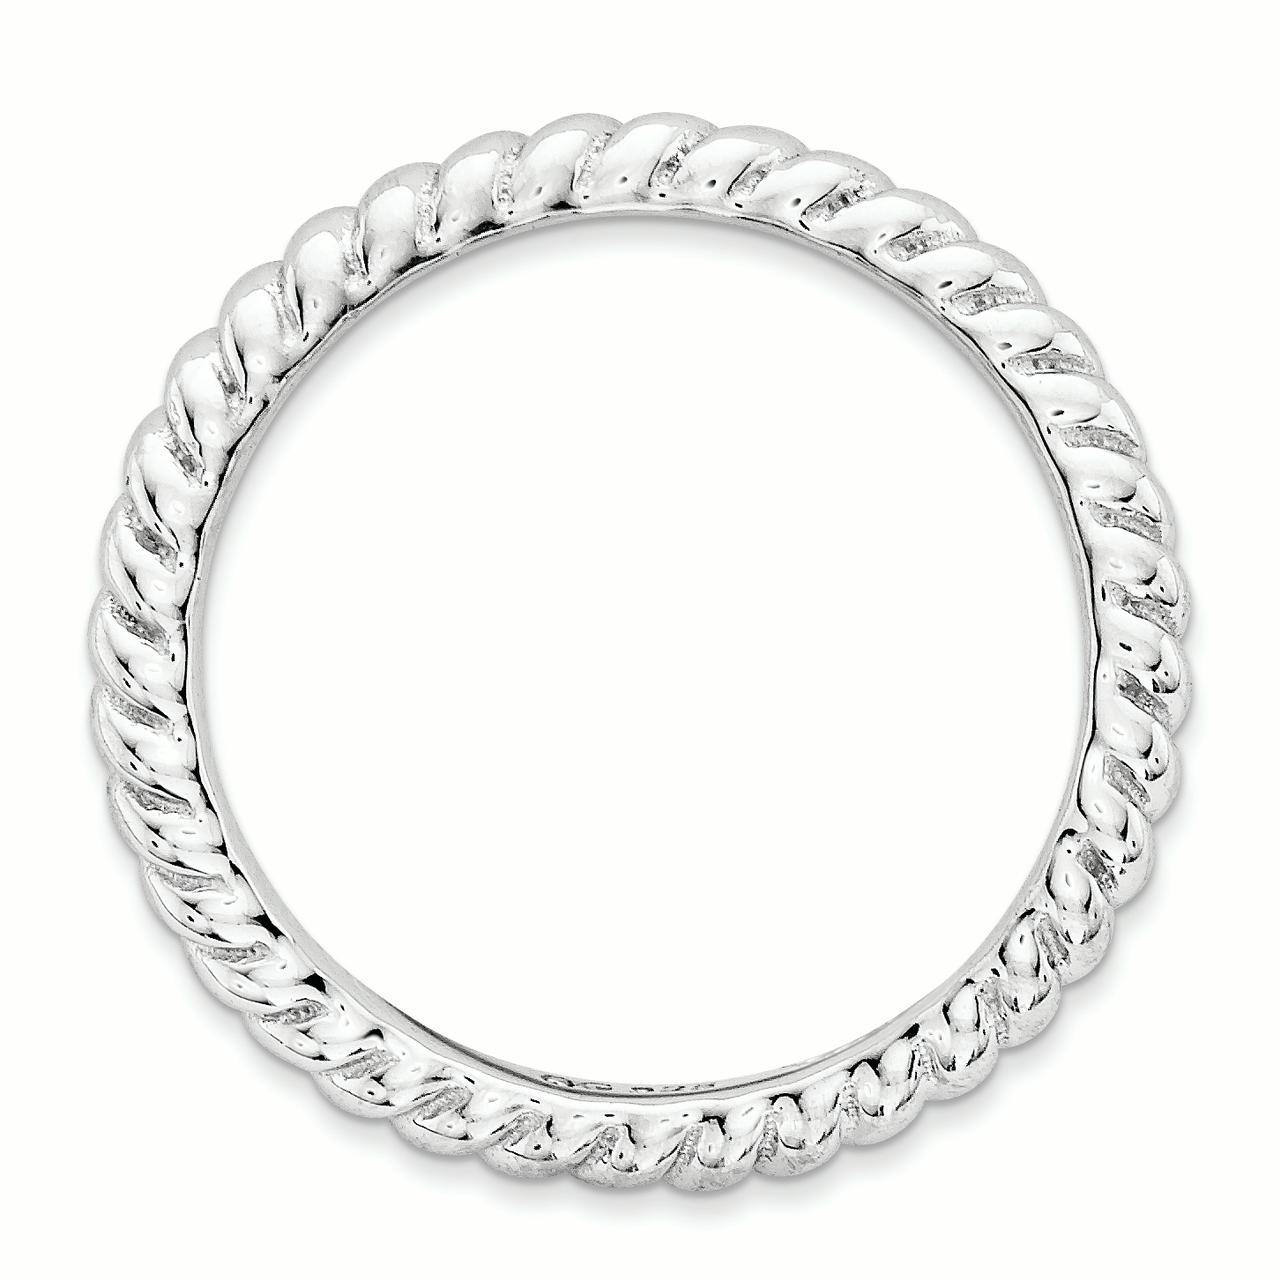 Sterling Silver Stackable Expressions Polished Rhodium-plate Wave Ring Size 9 - image 3 de 3